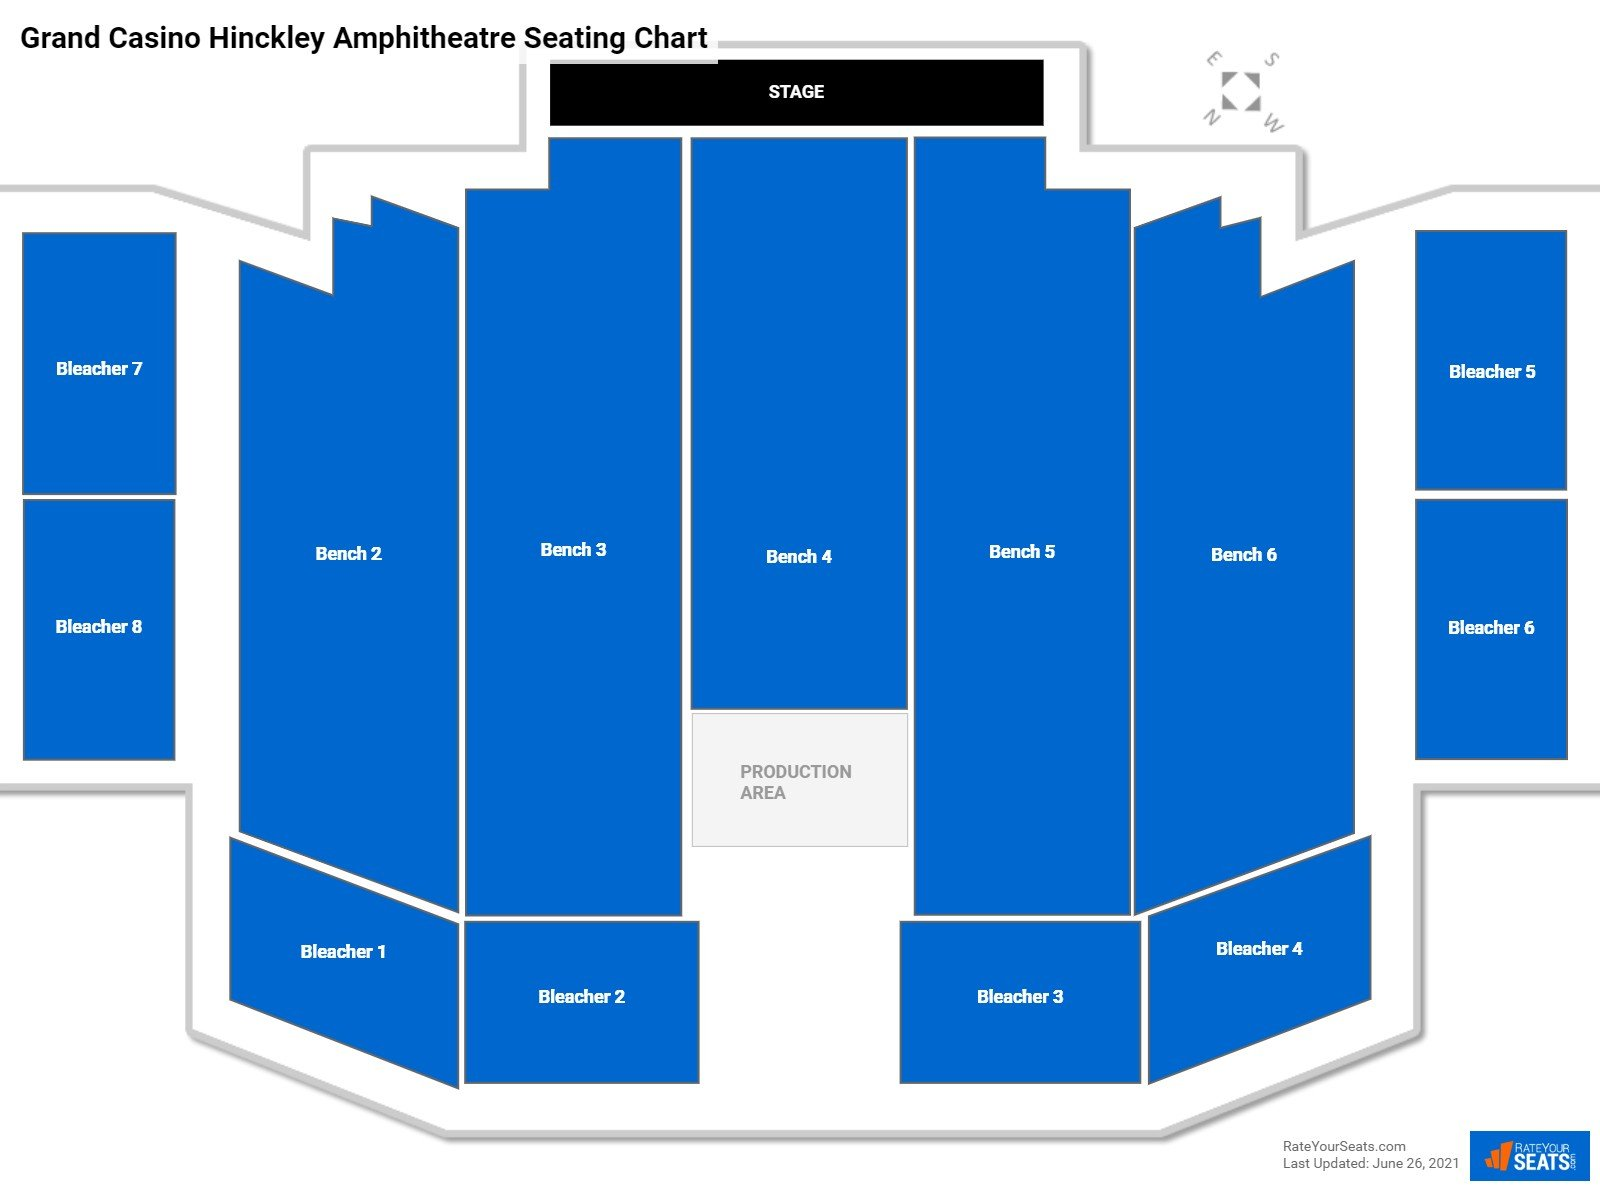 Grand Casino Hinckley Amphitheatre Seating Chart